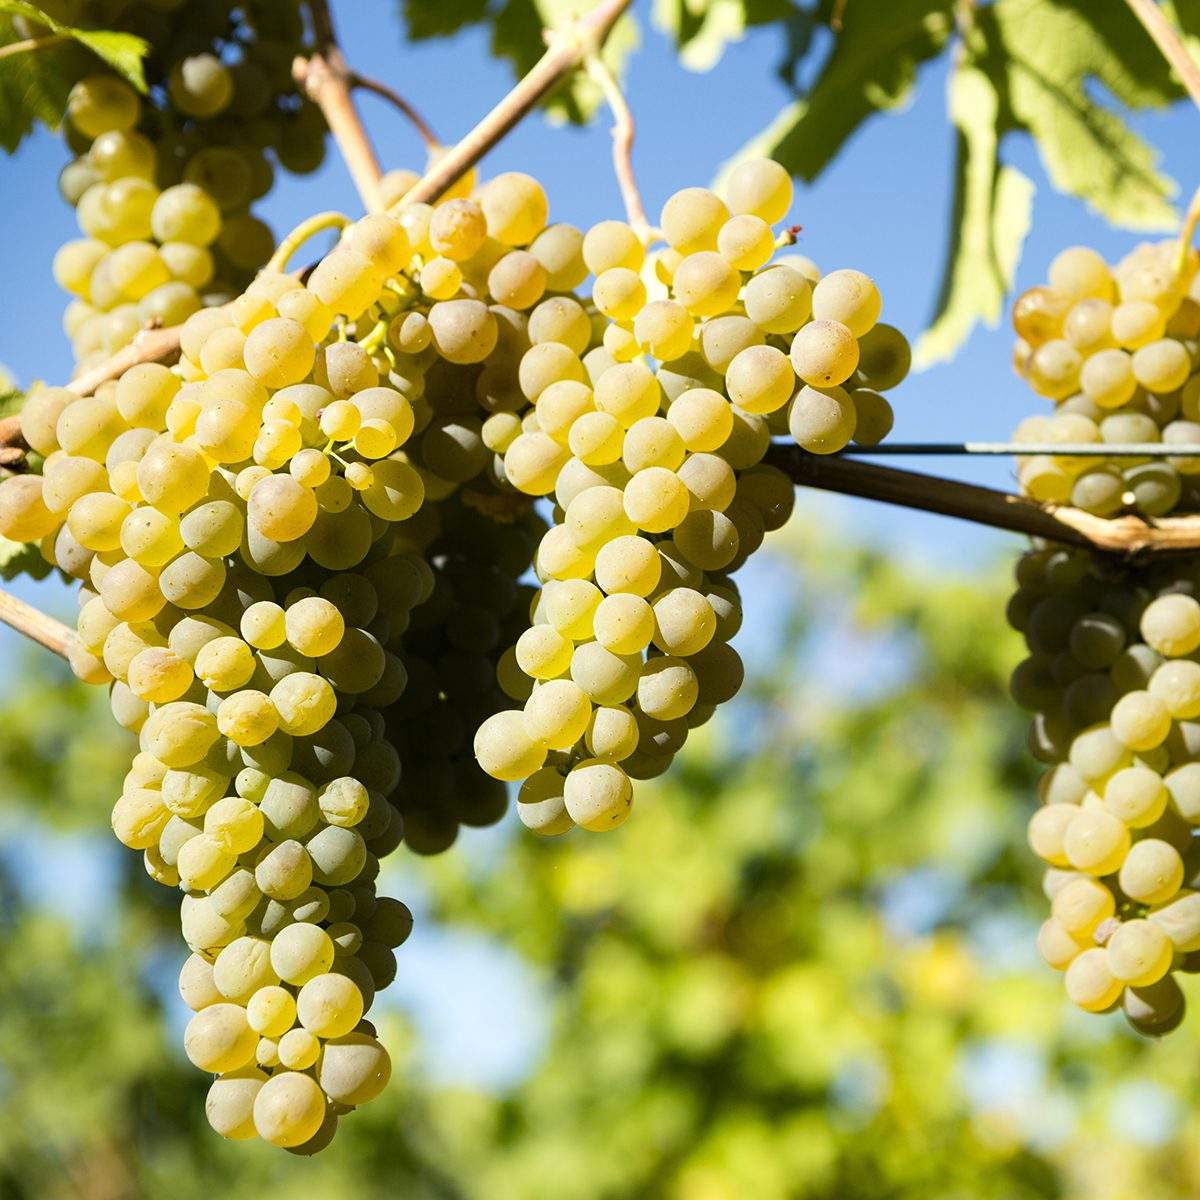 Viognier is a white wine grape variety